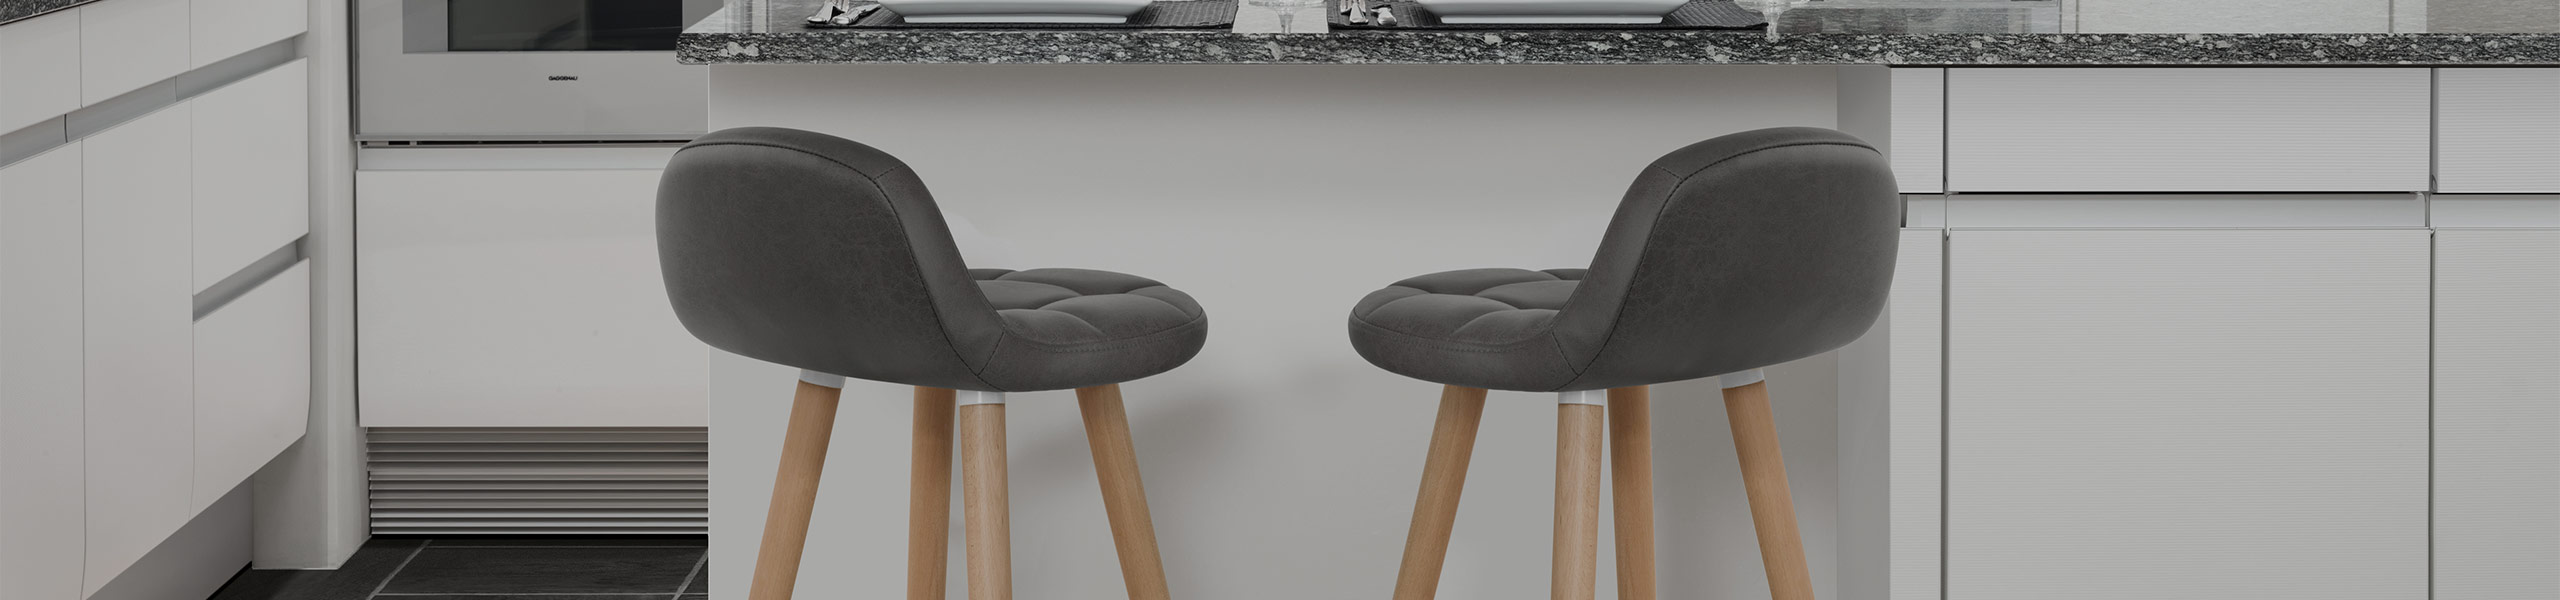 Sole Wooden Stool Grey Video Banner